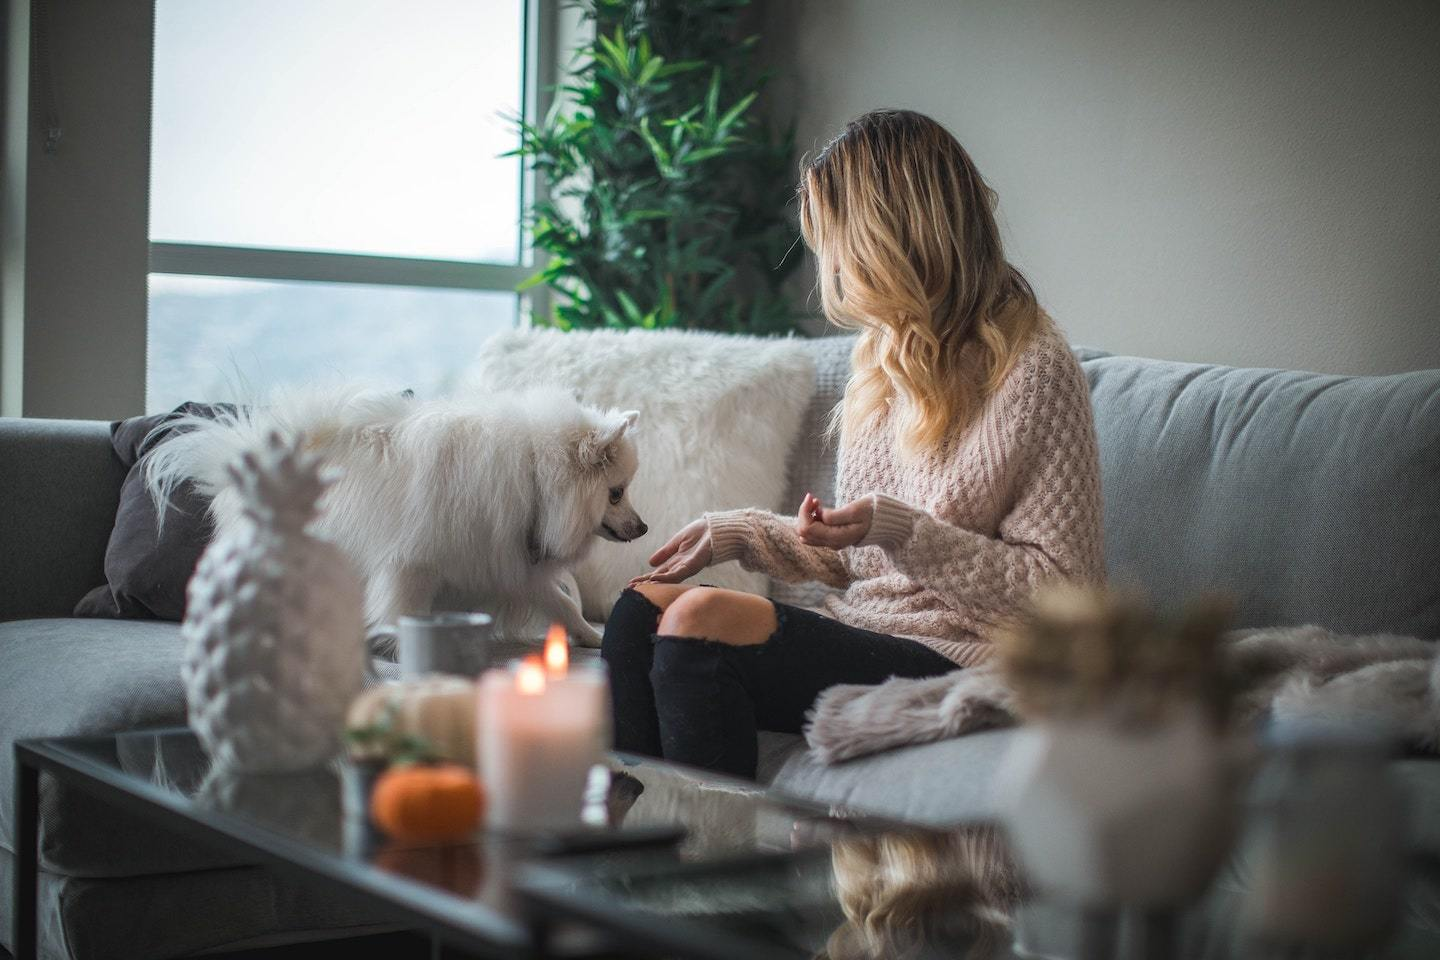 woman sitting on couch feeding small white dog